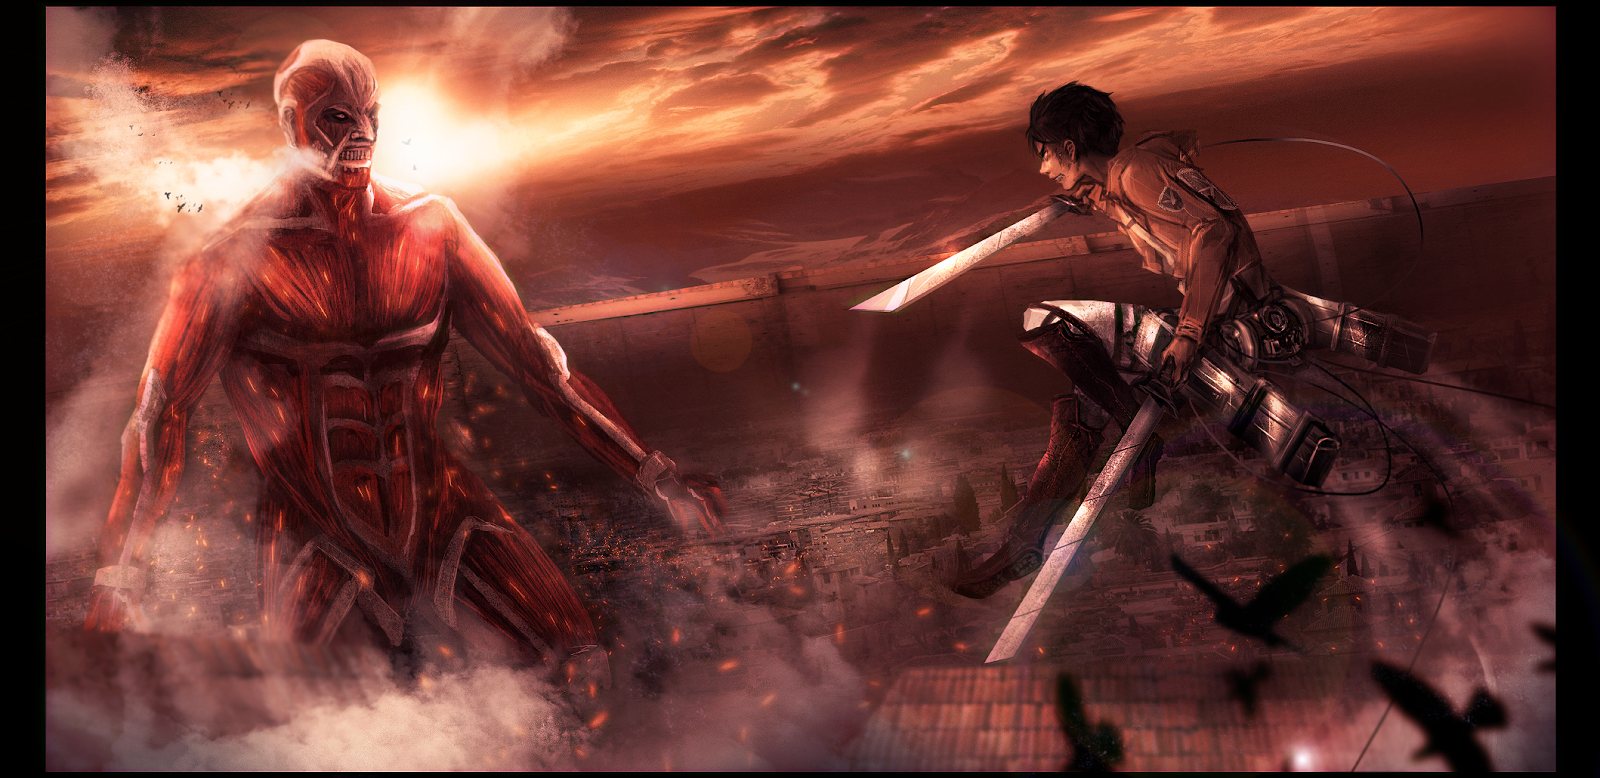 Attack on Titan Wallpapers for Phone